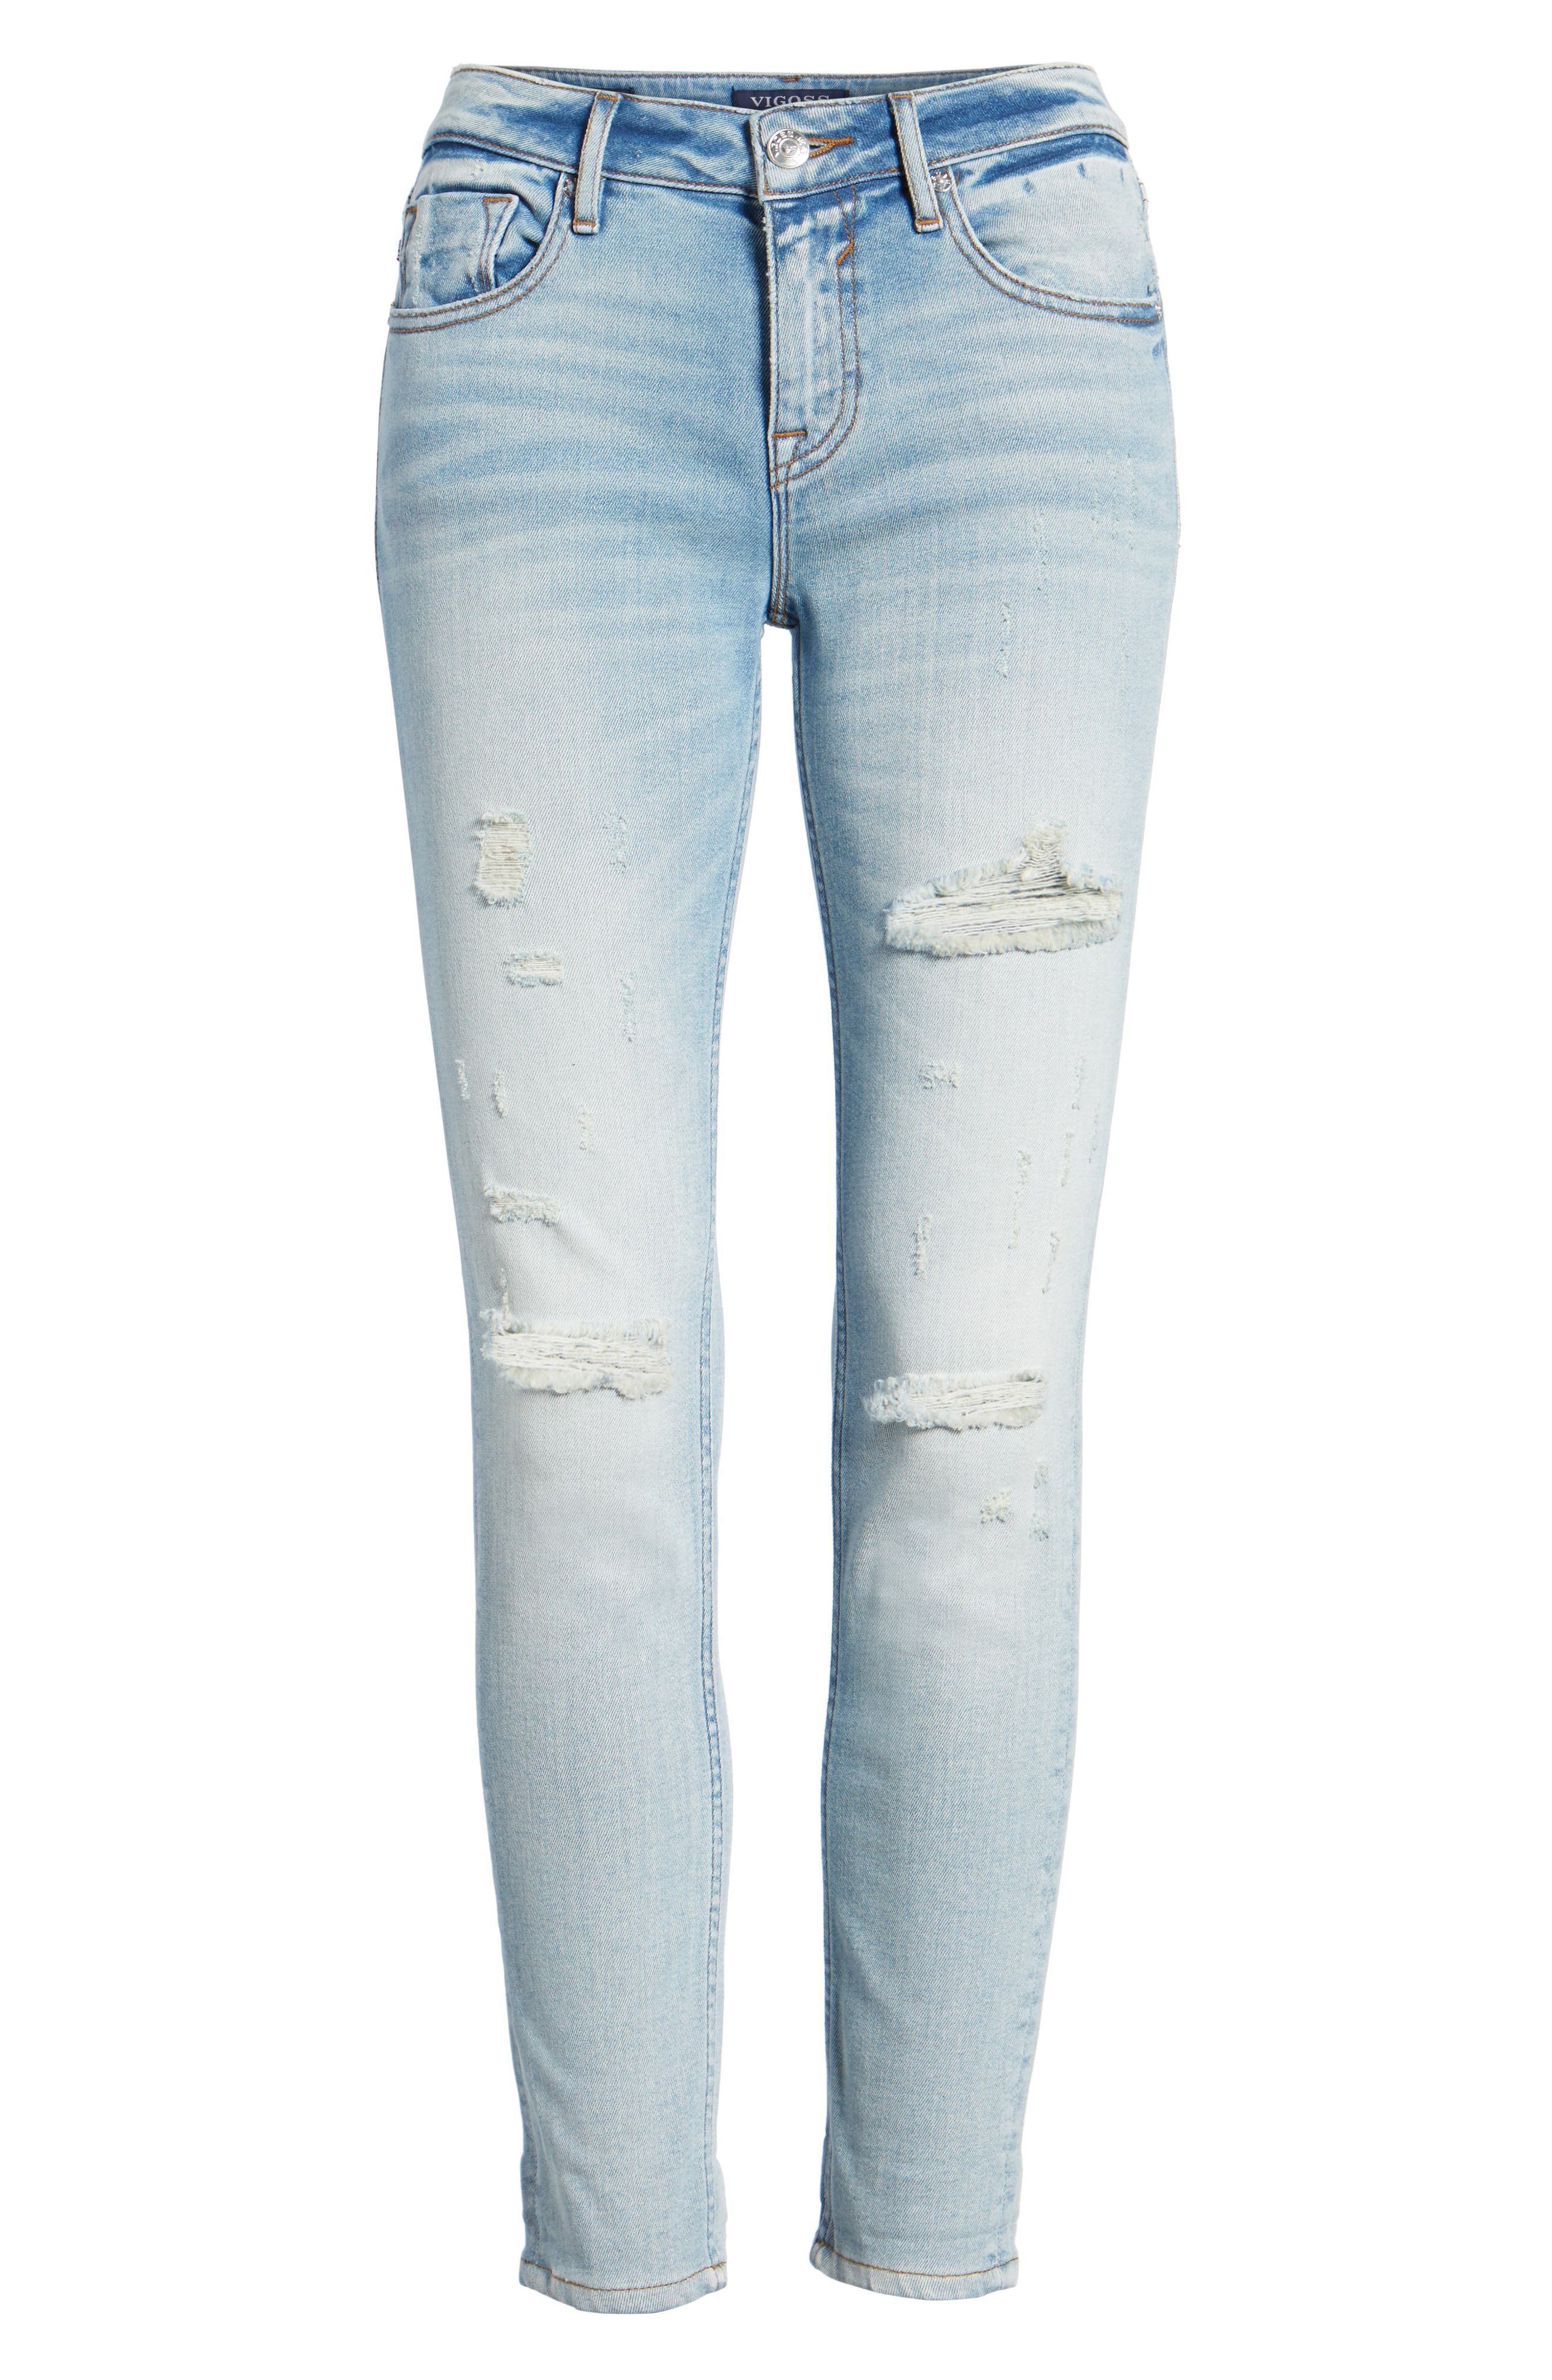 Thompson Tomboy Distressed Skinny Jeans,                             Alternate thumbnail 7, color,                             Light Wash